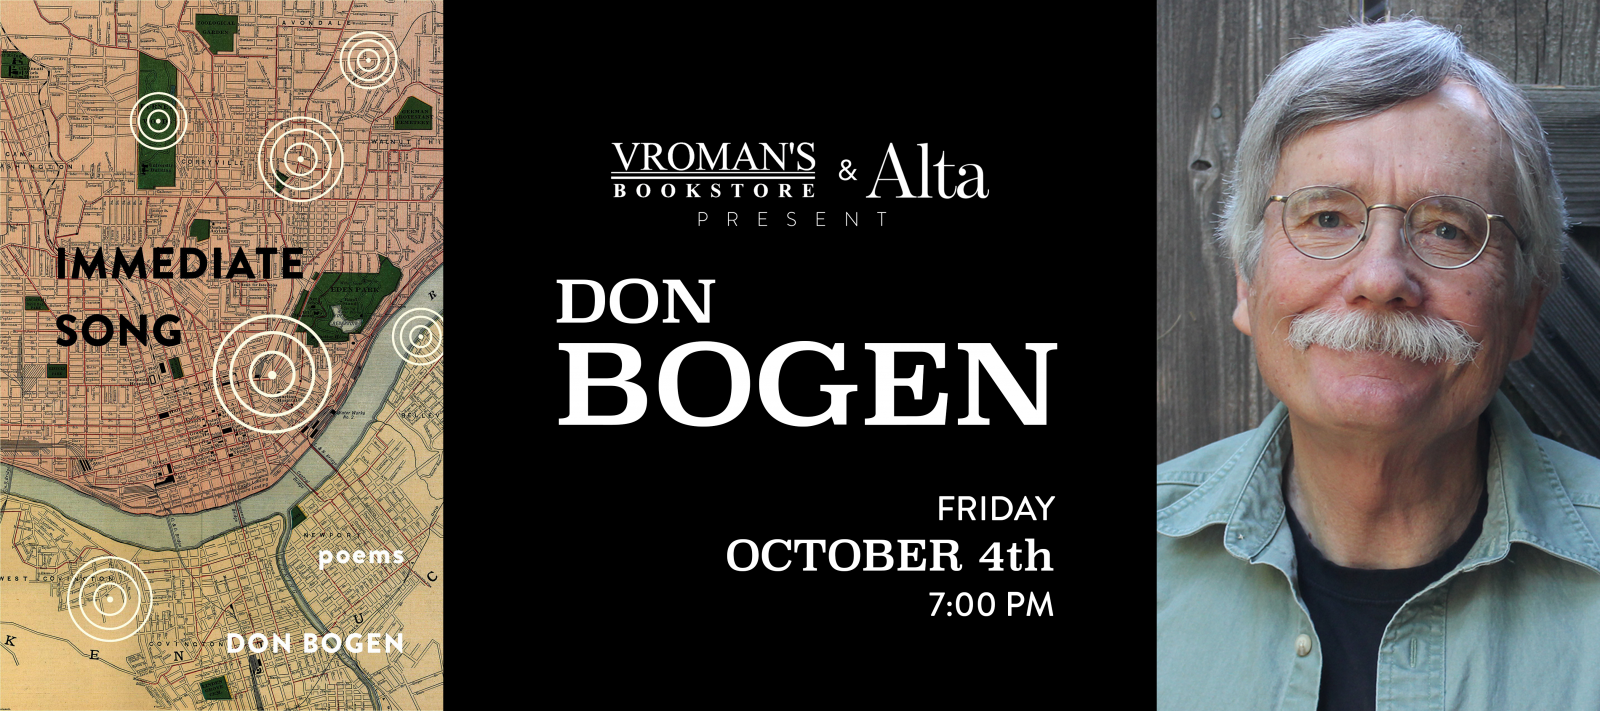 Don Bogen book signing Friday Oct 4 at 7pm